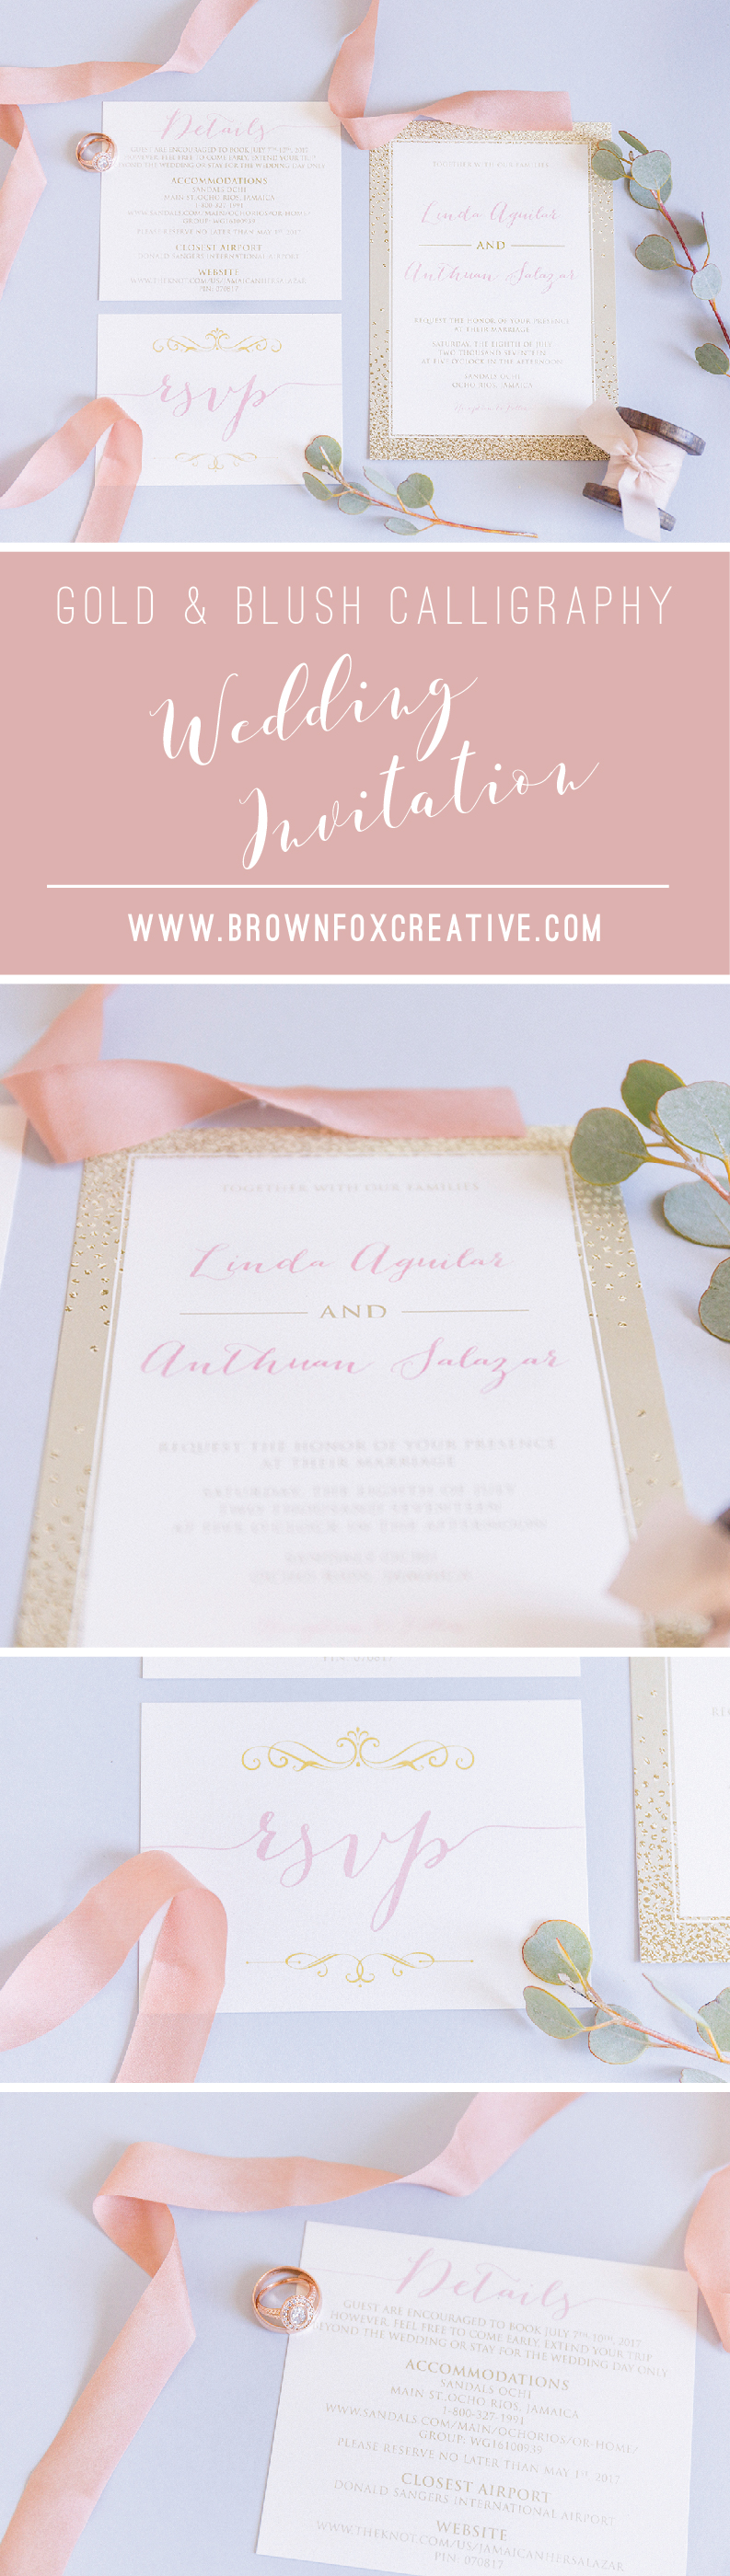 Blush Pink And Gold Looks Like Foil Wedding Invitation Suite With